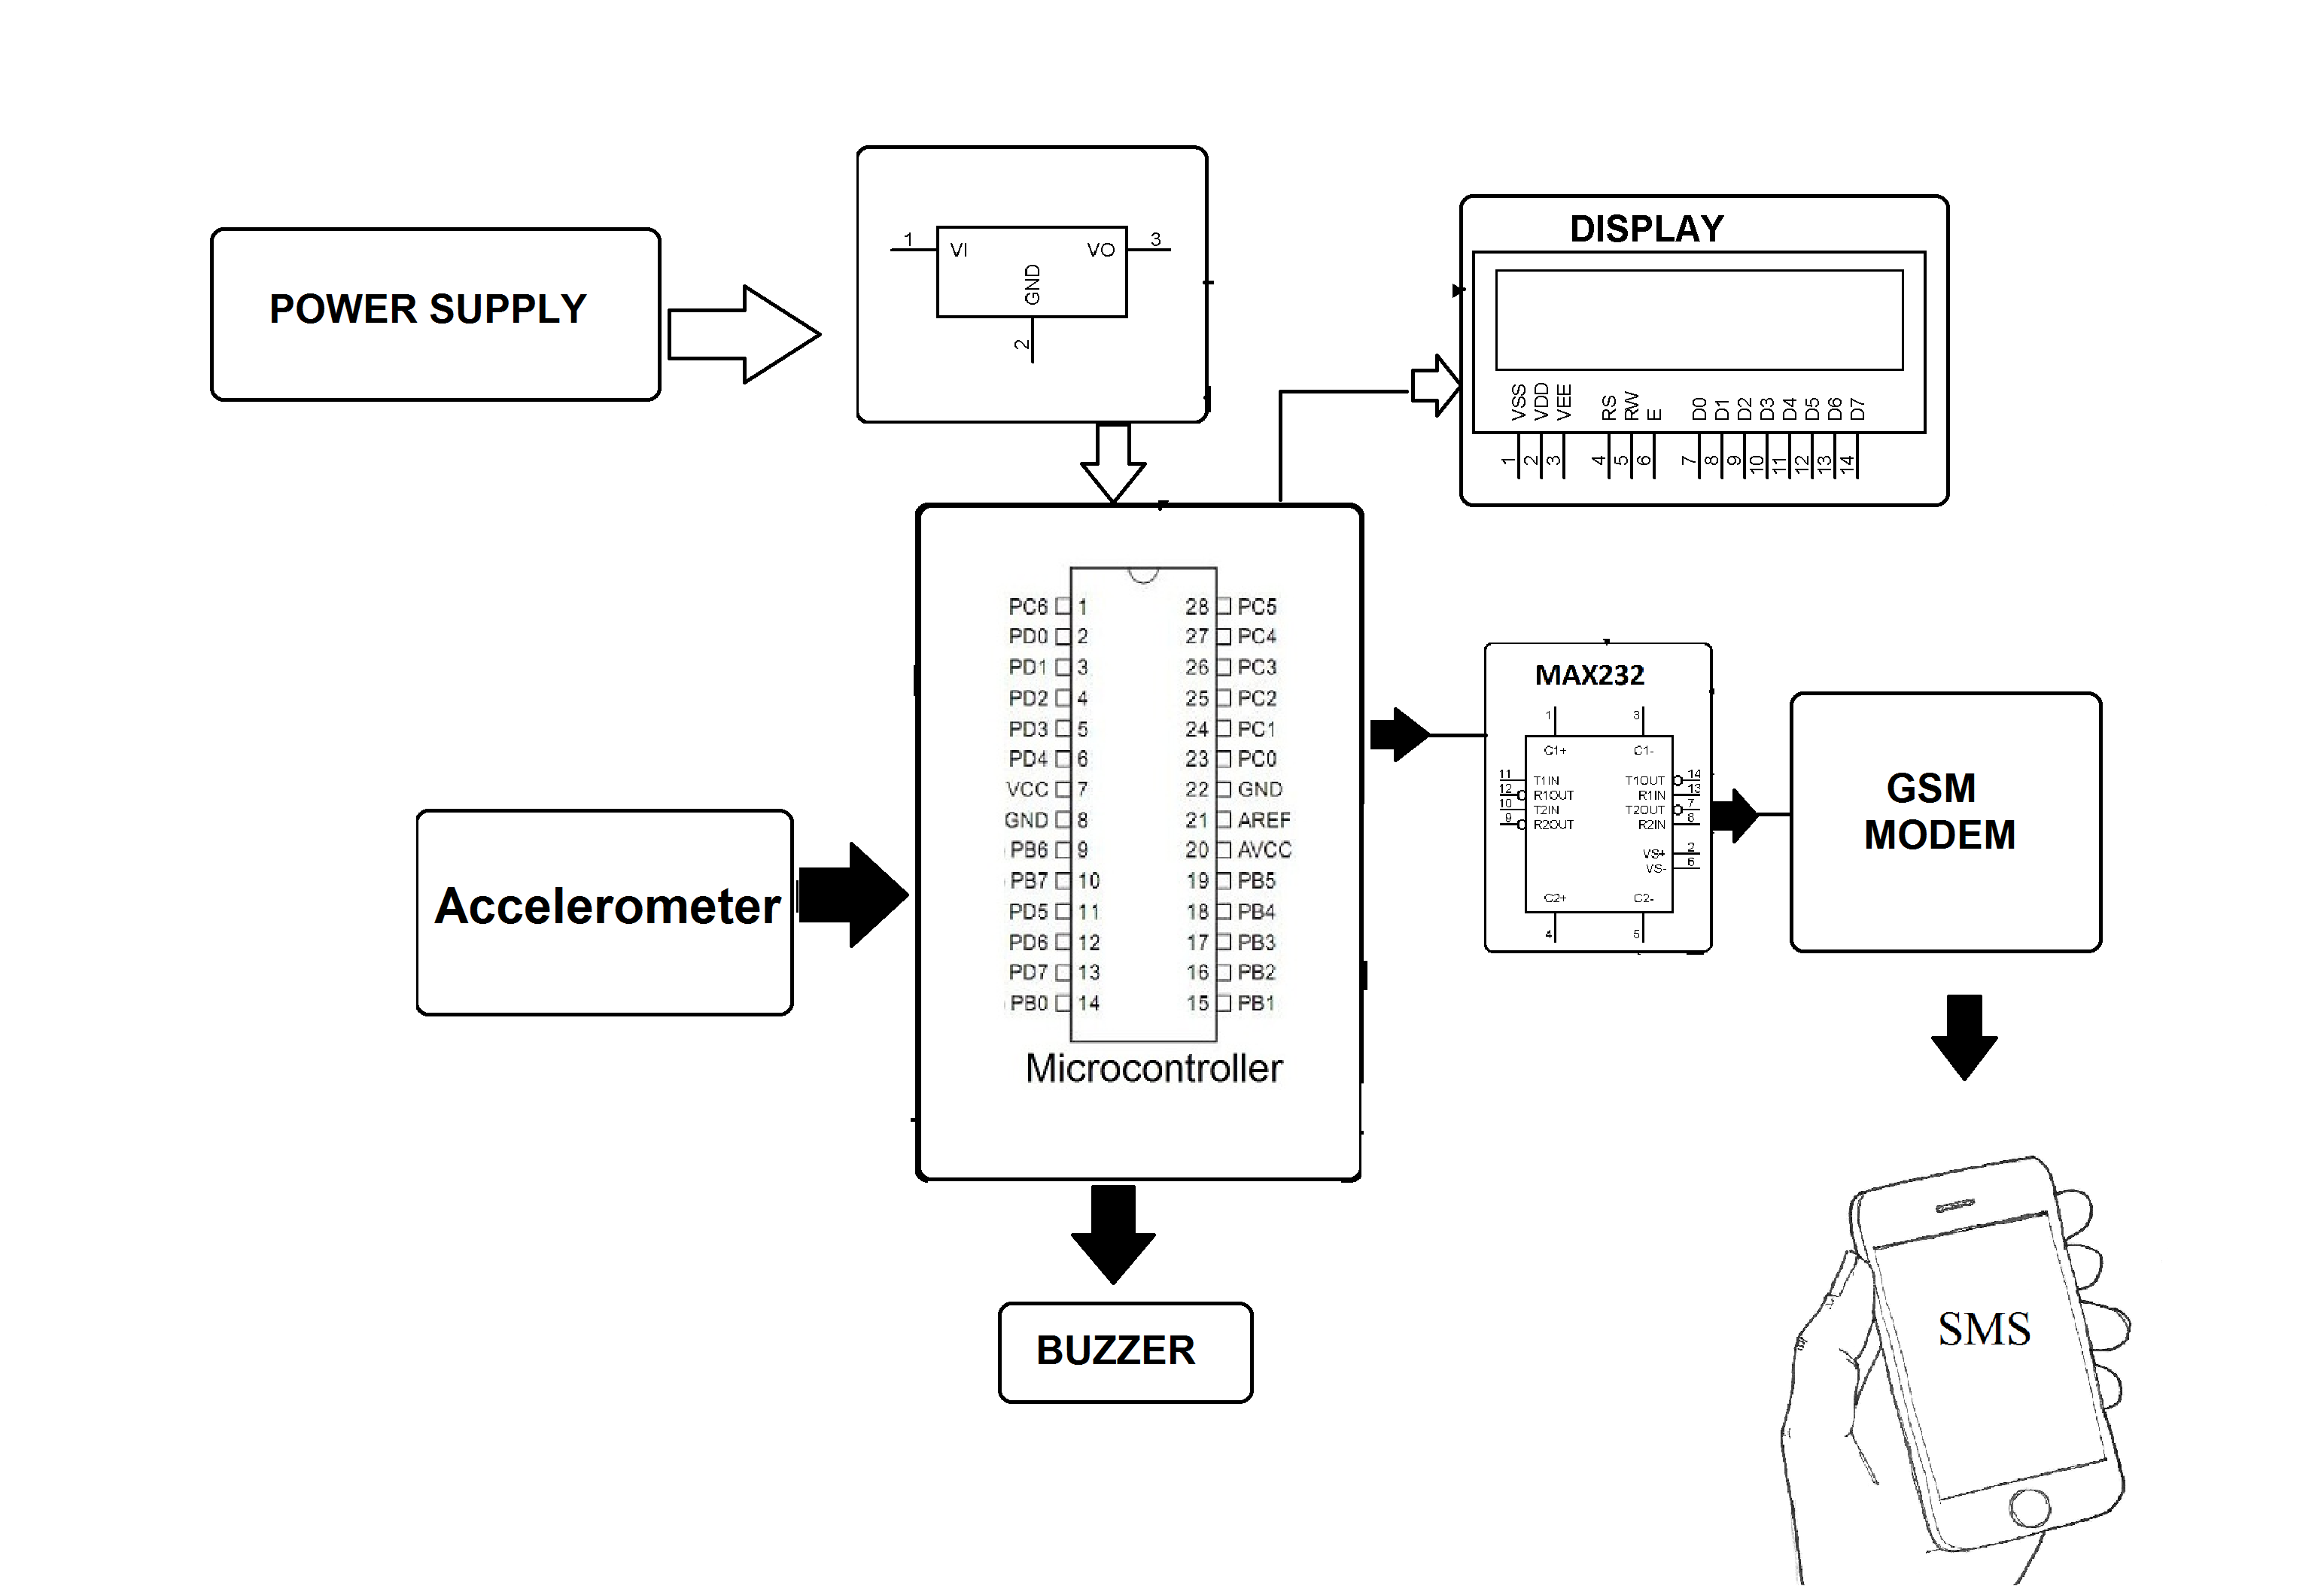 motion based gsm messaging system for patients